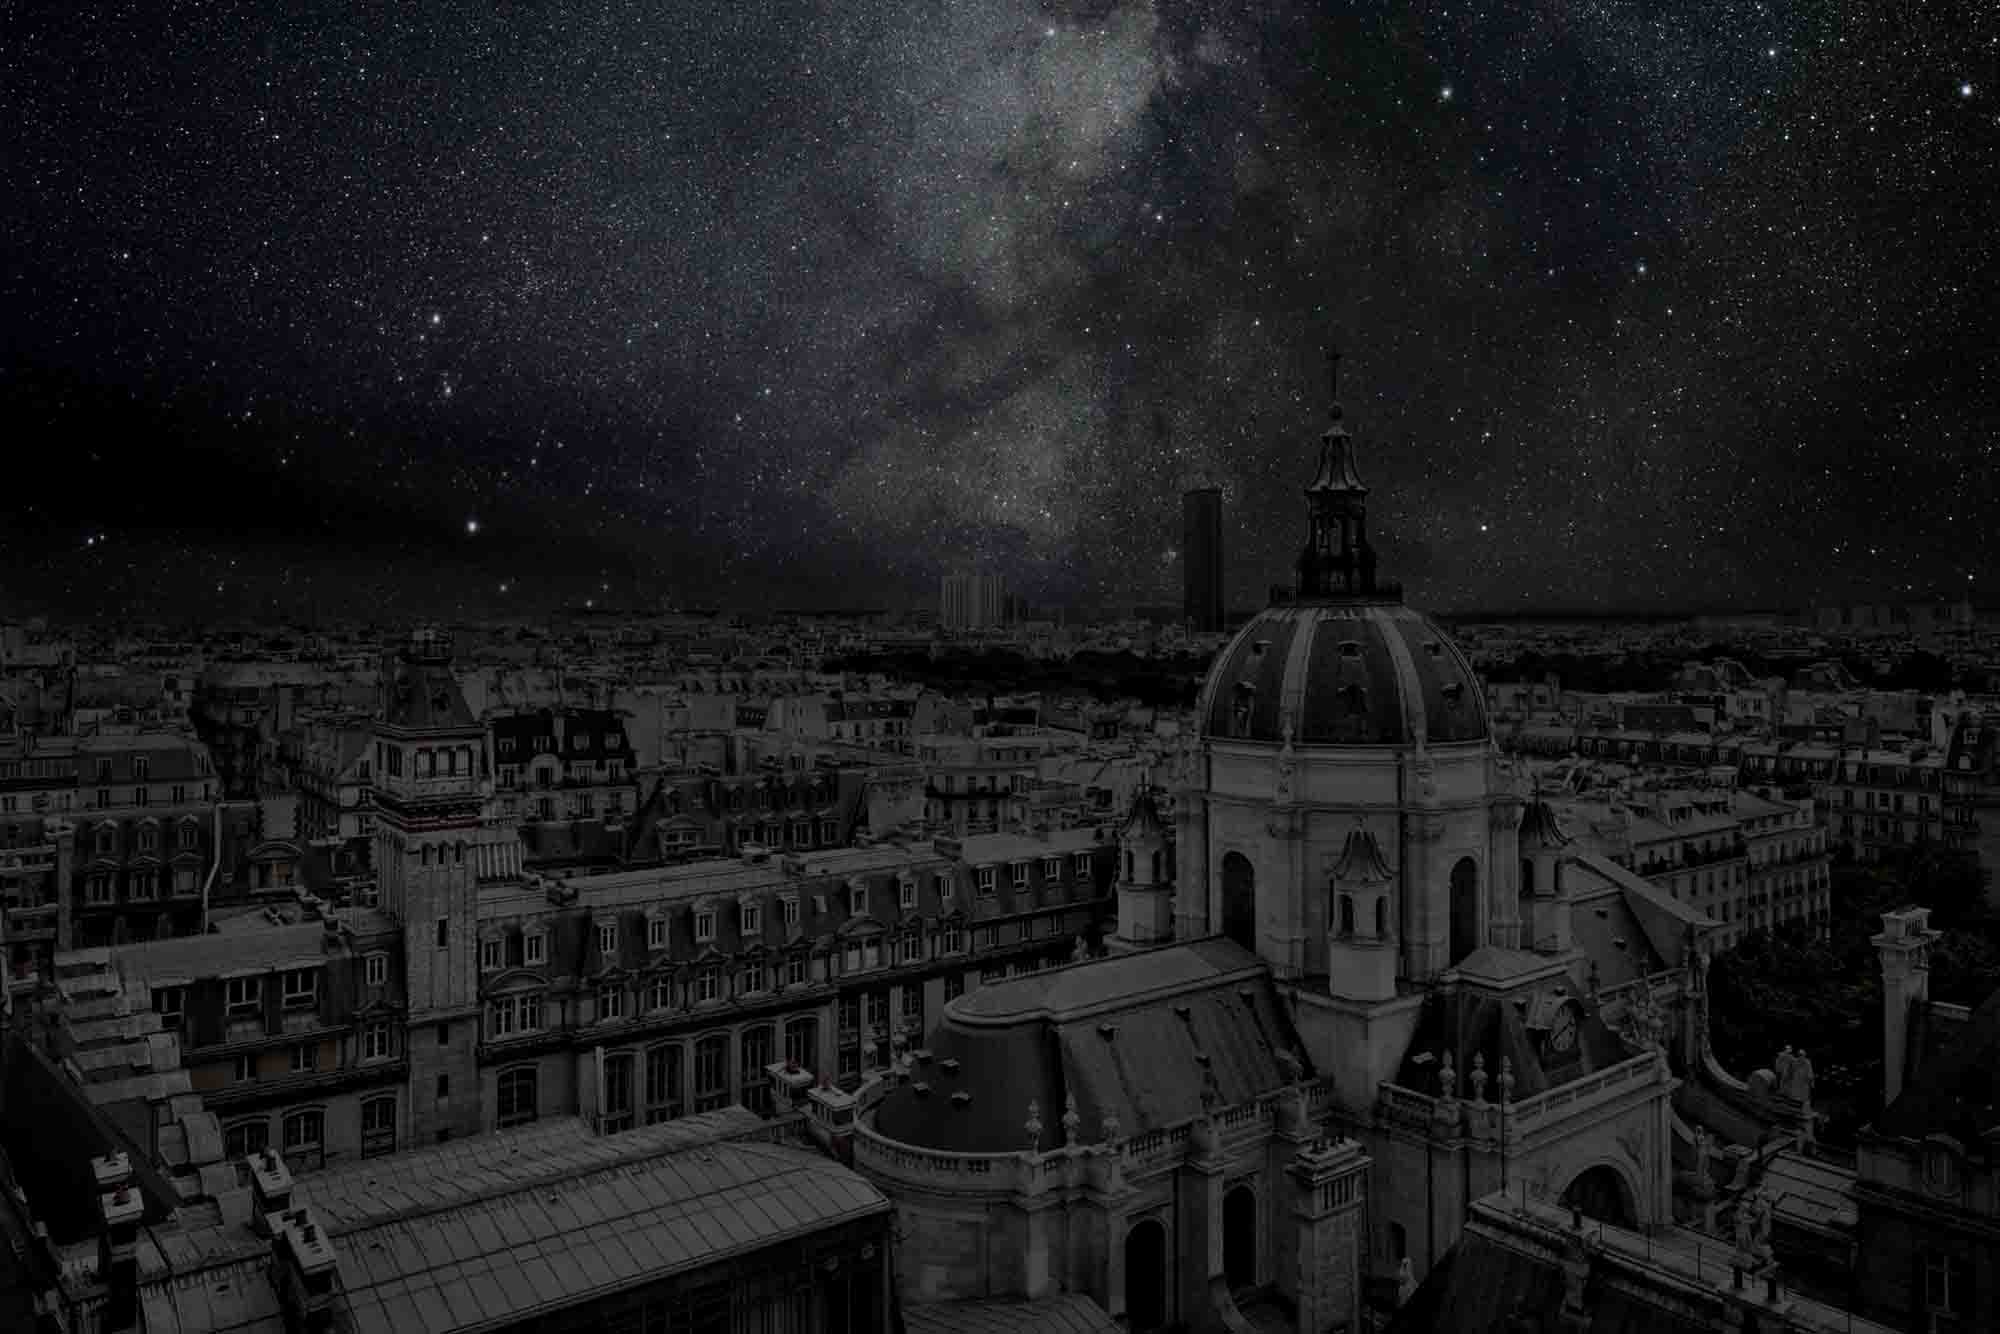 Paris 48° 50' 55'' N 2012-08-13 lst 22:15<br/>Darkened Cities - Villes éteintes